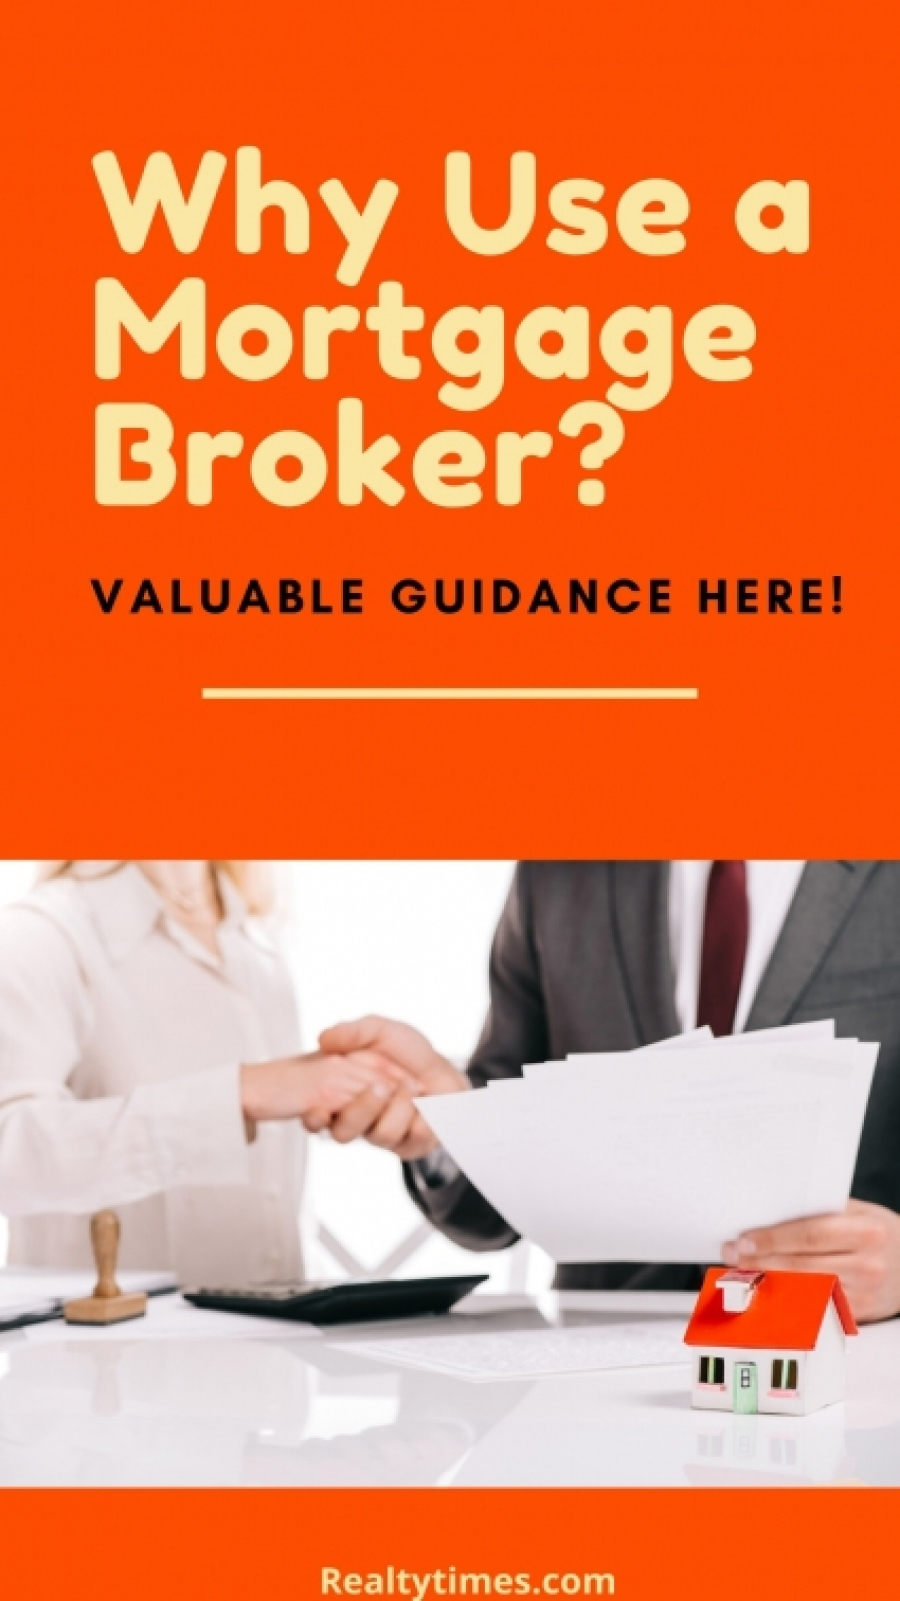 Why Should I Use a Mortgage Broker?